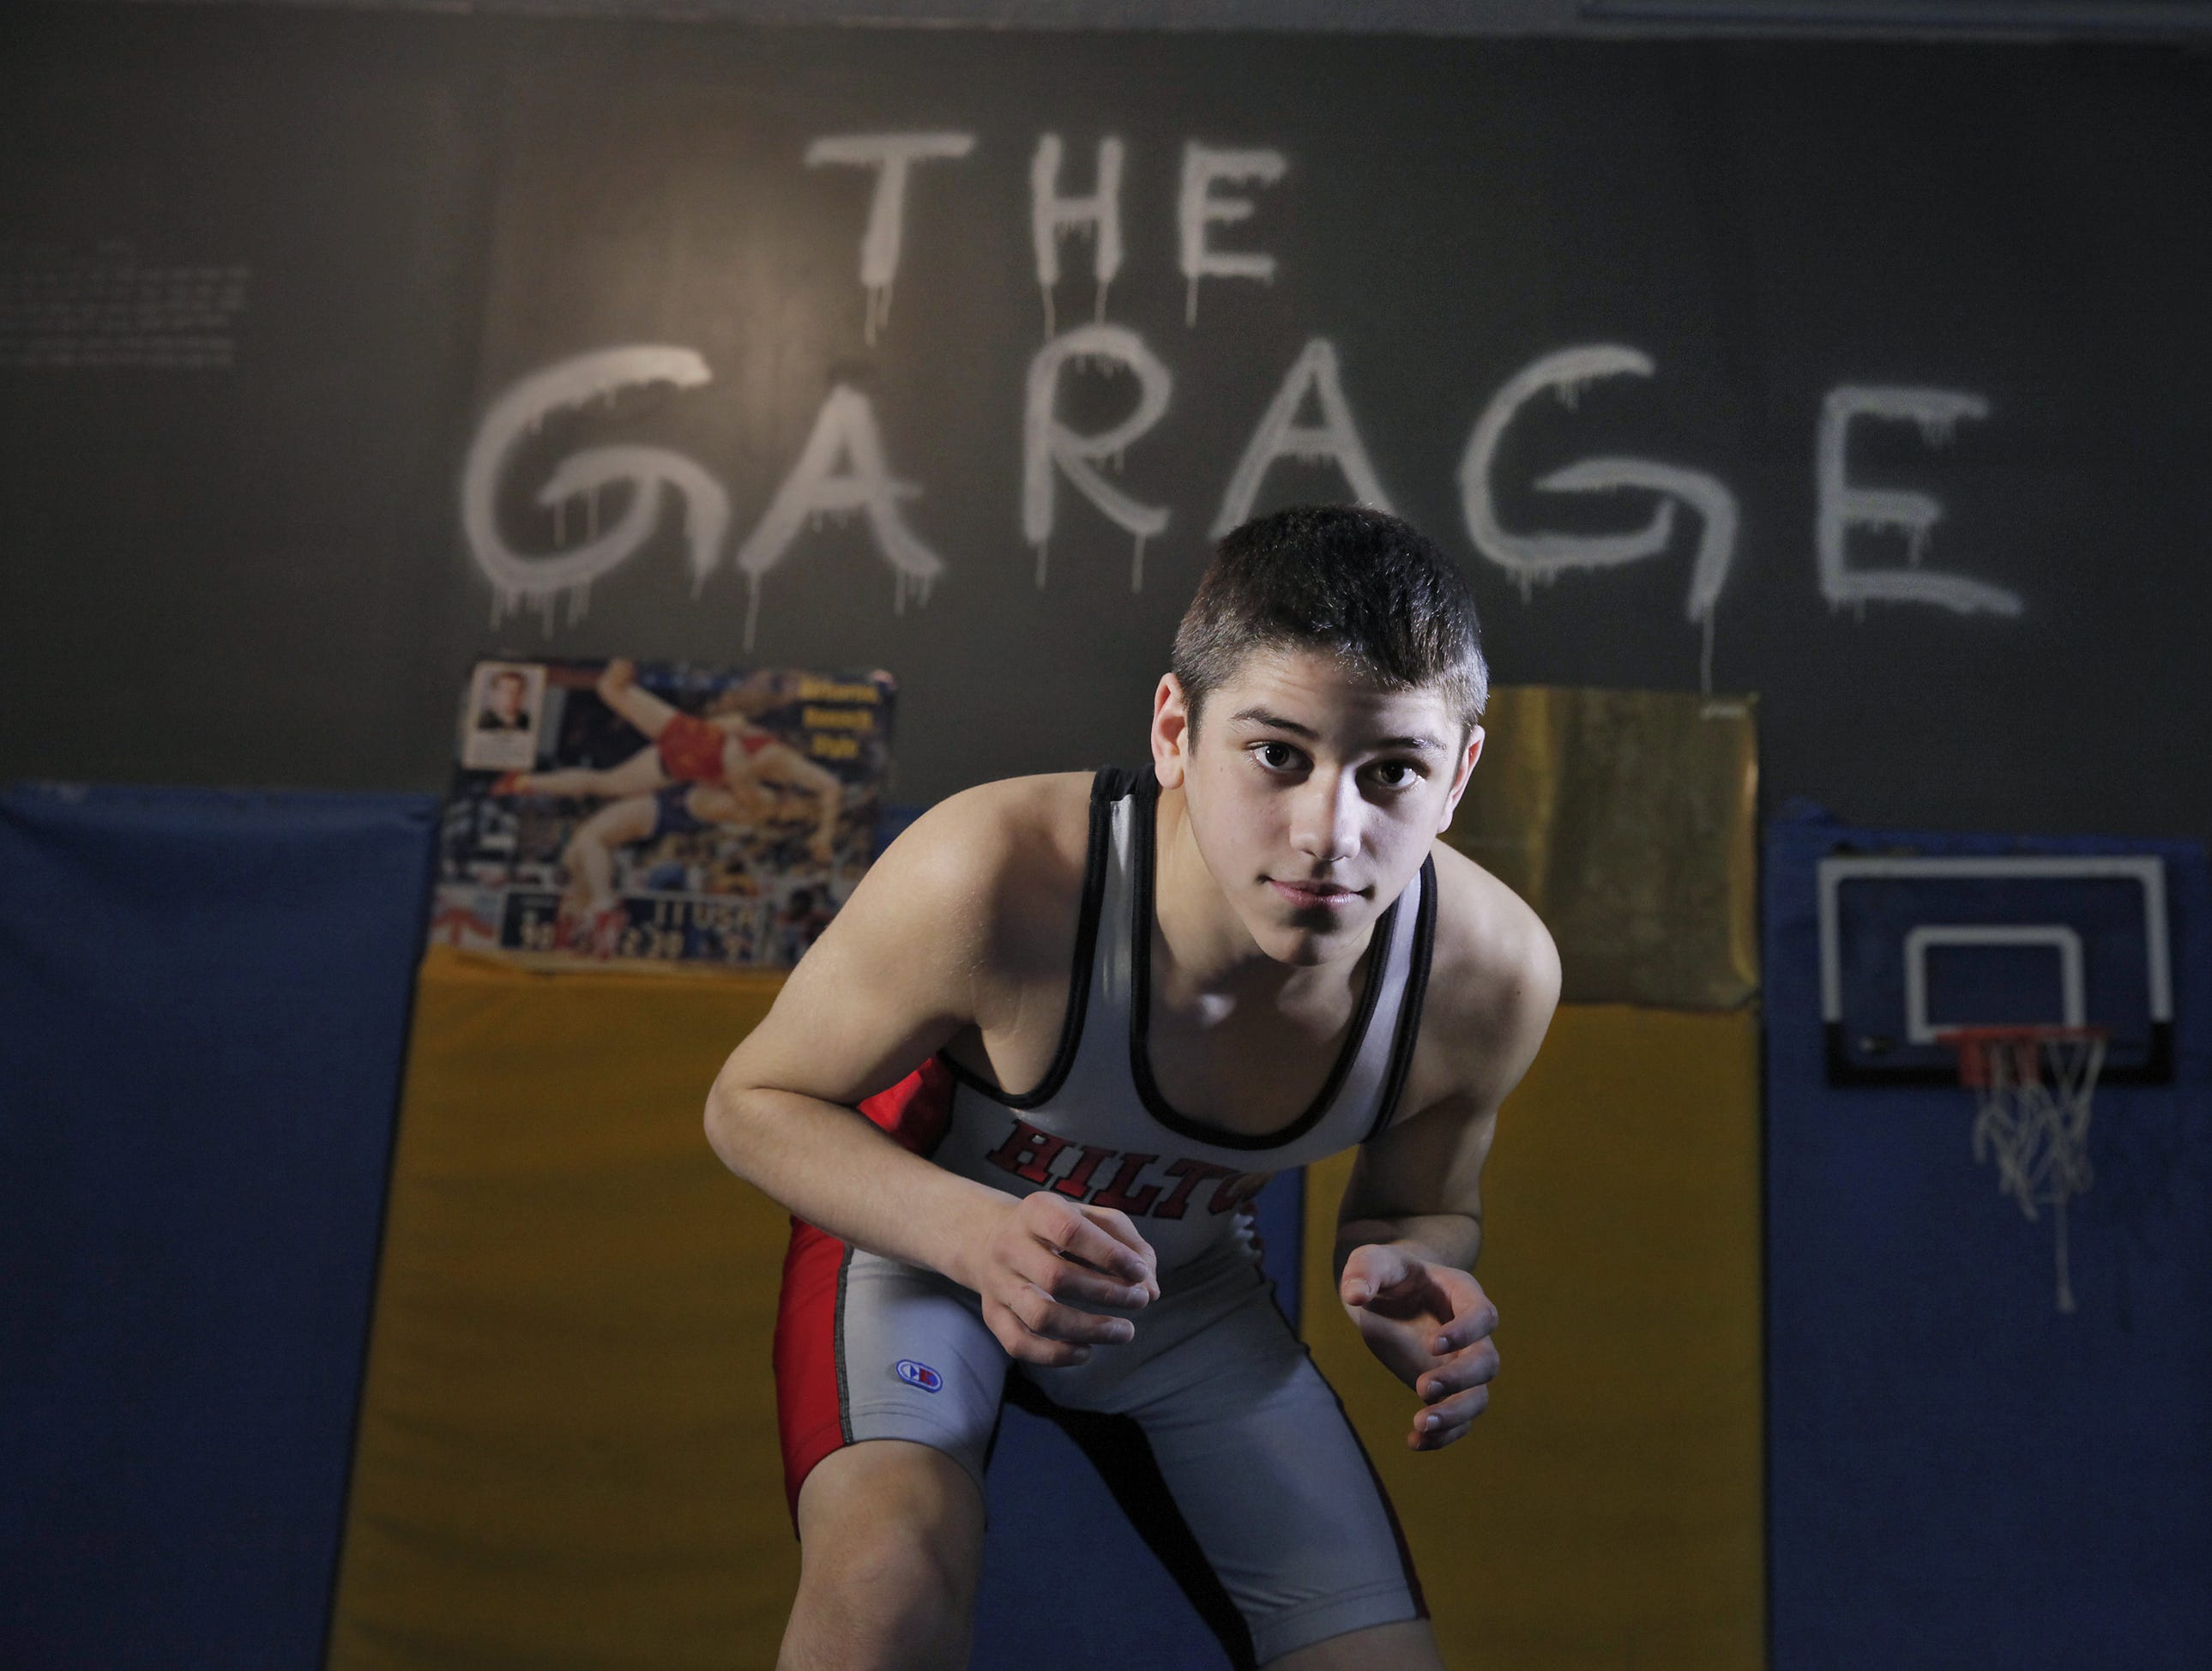 Eighth-grader Yianni Diakomihalis of Hilton hones his skills in 'The Garage,' a training facility at his family's home.